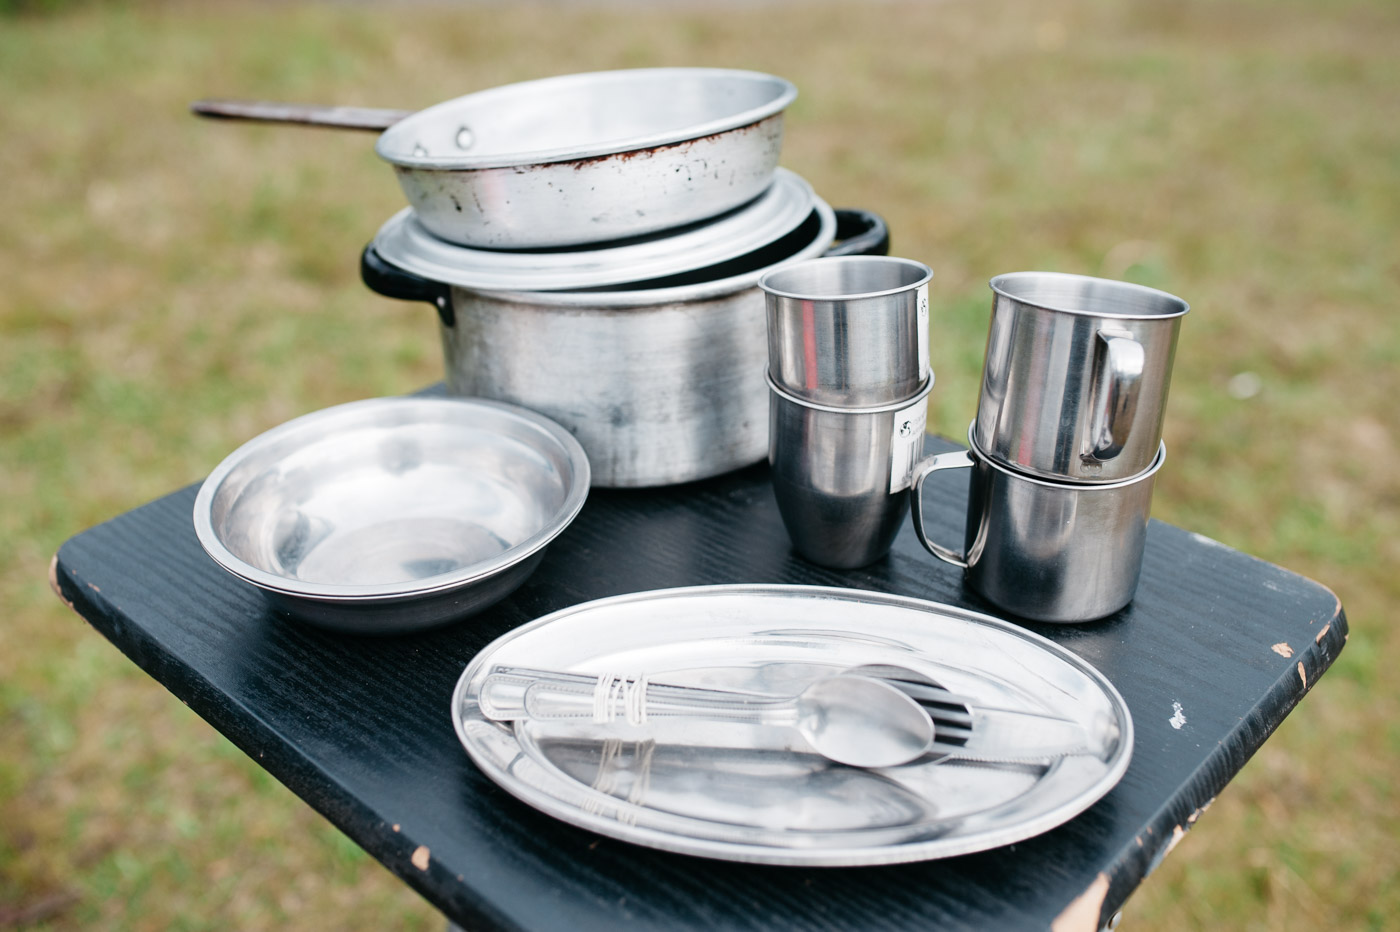 Wicked SouthAmerica Campervan Review-Cookware